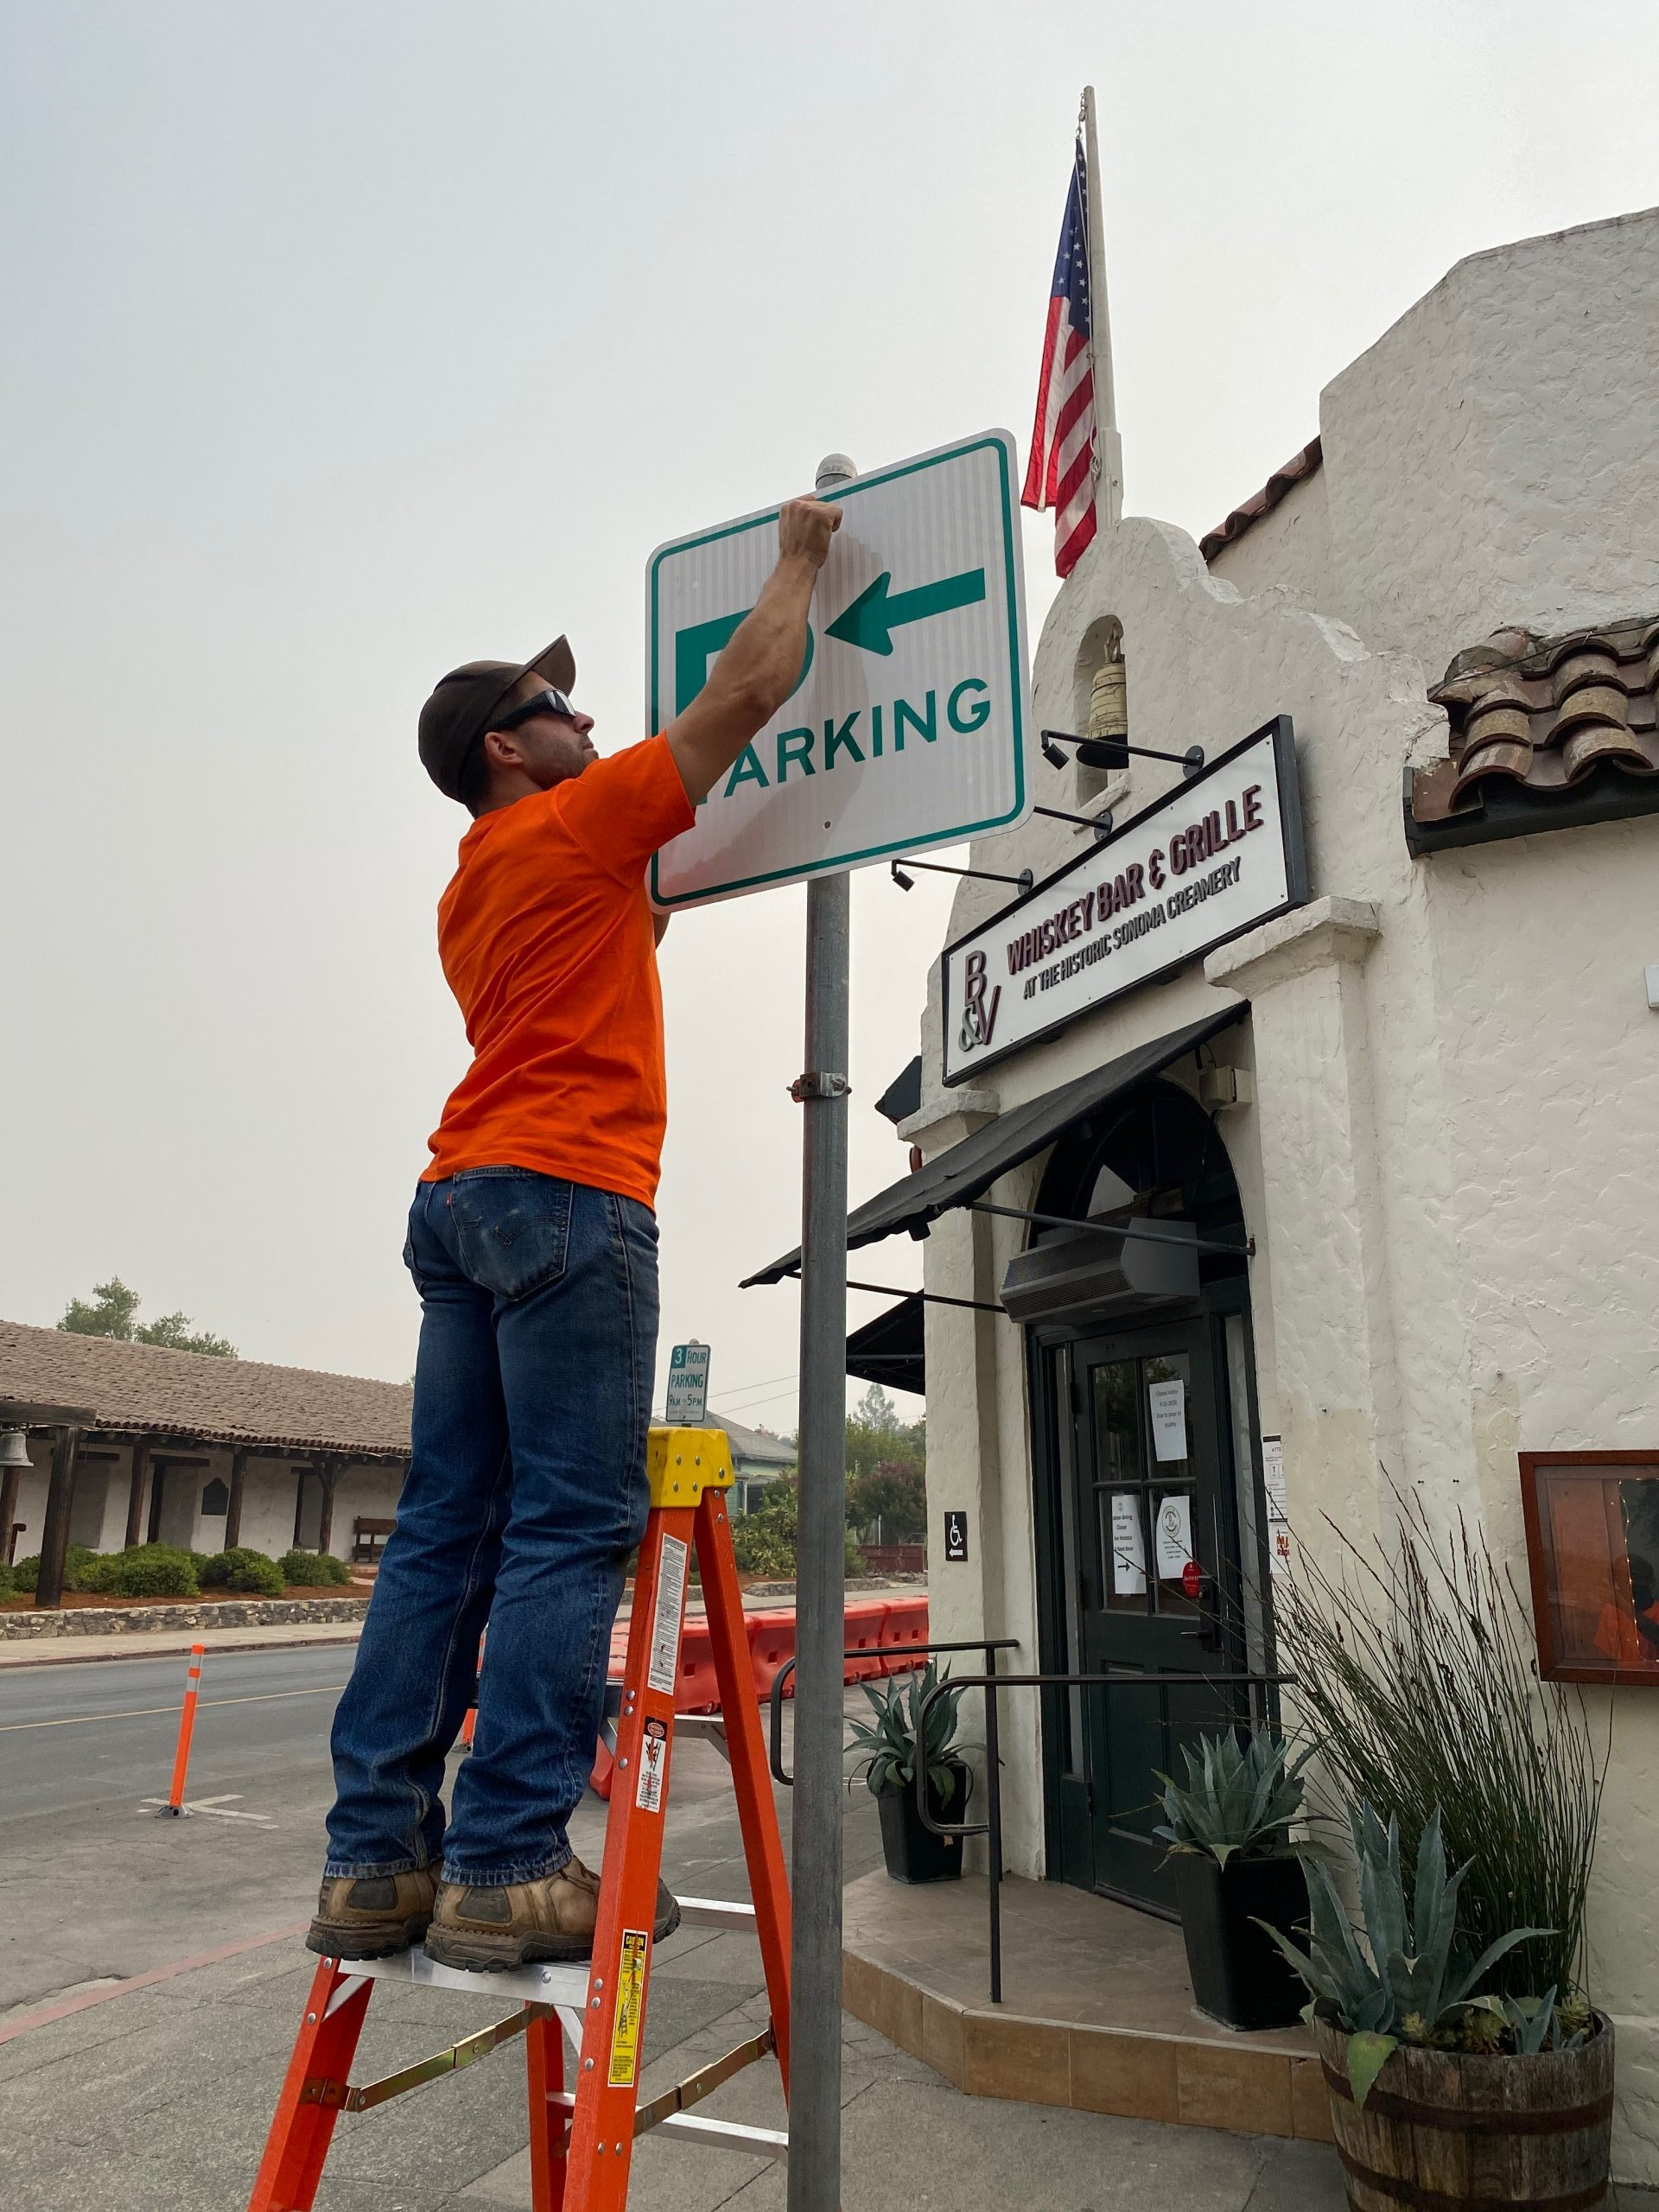 City Public Works Staff Installing a New Directional Parking Sign on the Plaza.